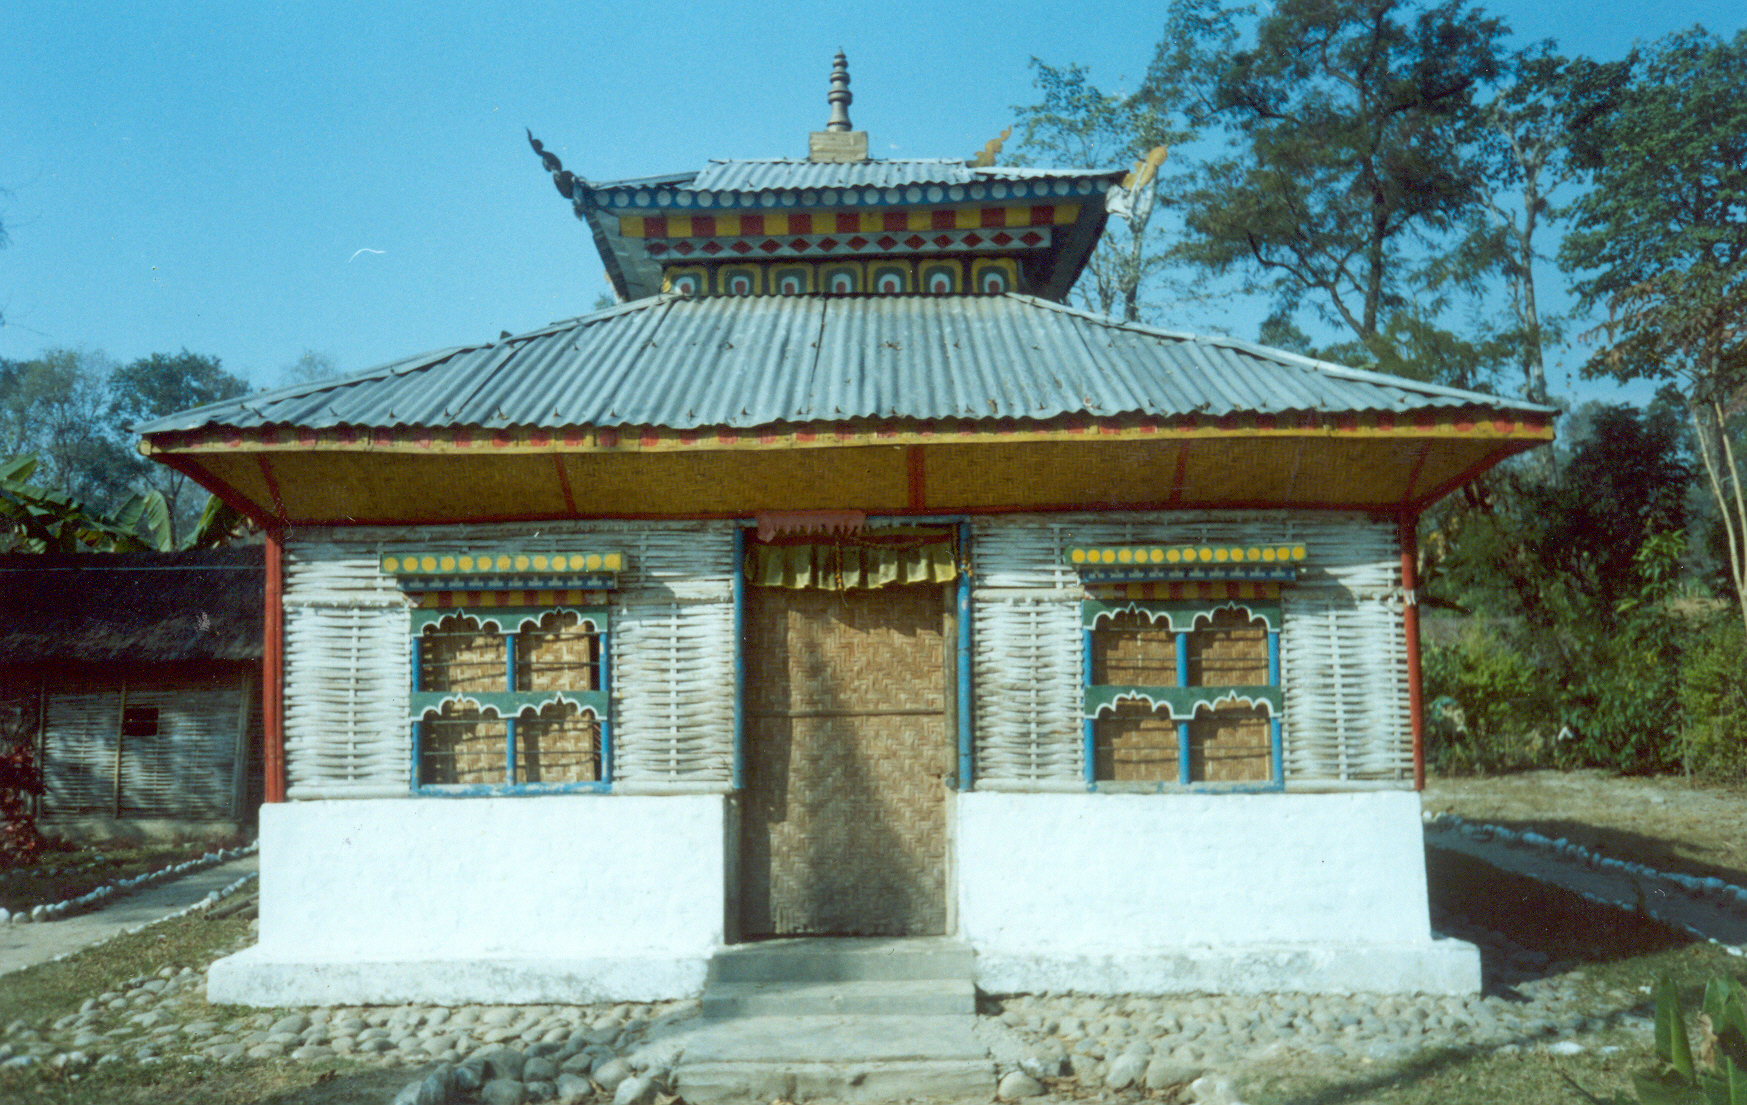 There are temples situated all over the camps. Khem / PhotoVoice / LWF